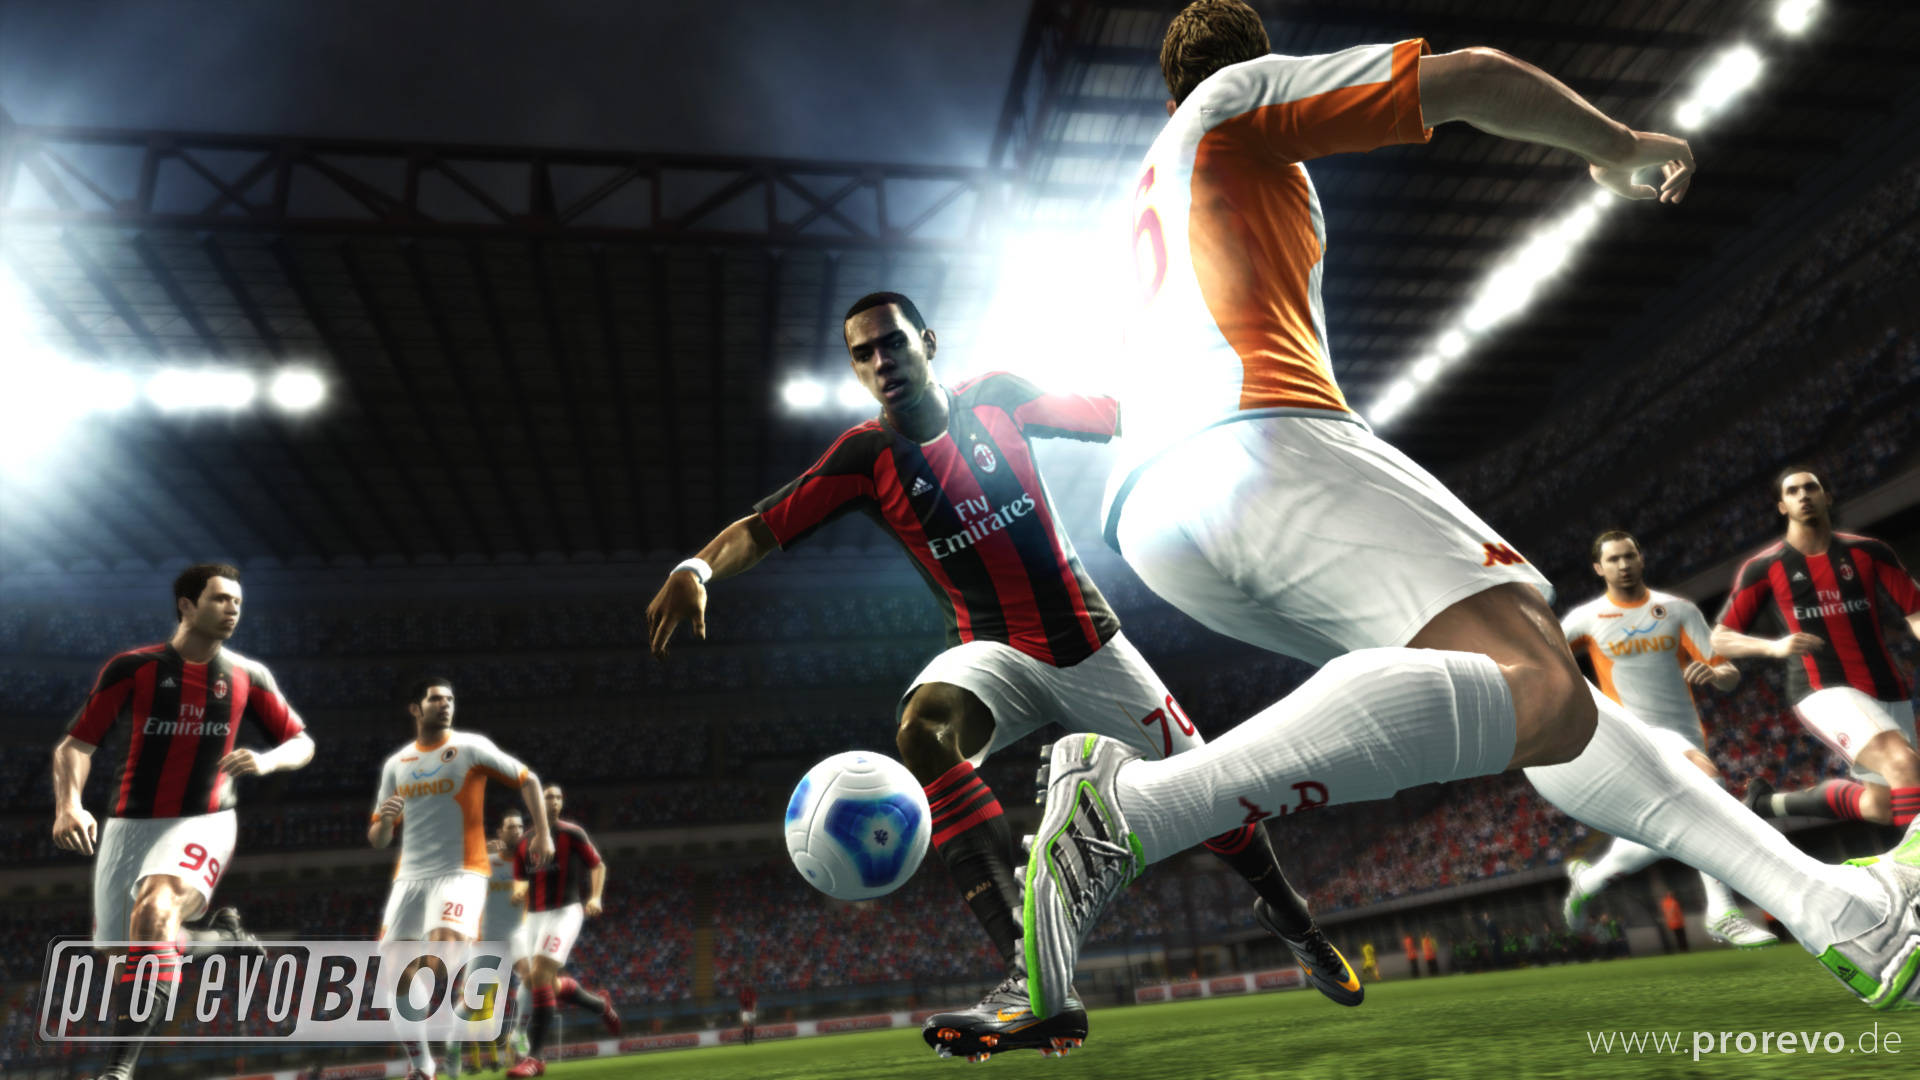 PES 2012 CD Key and Crack Free.